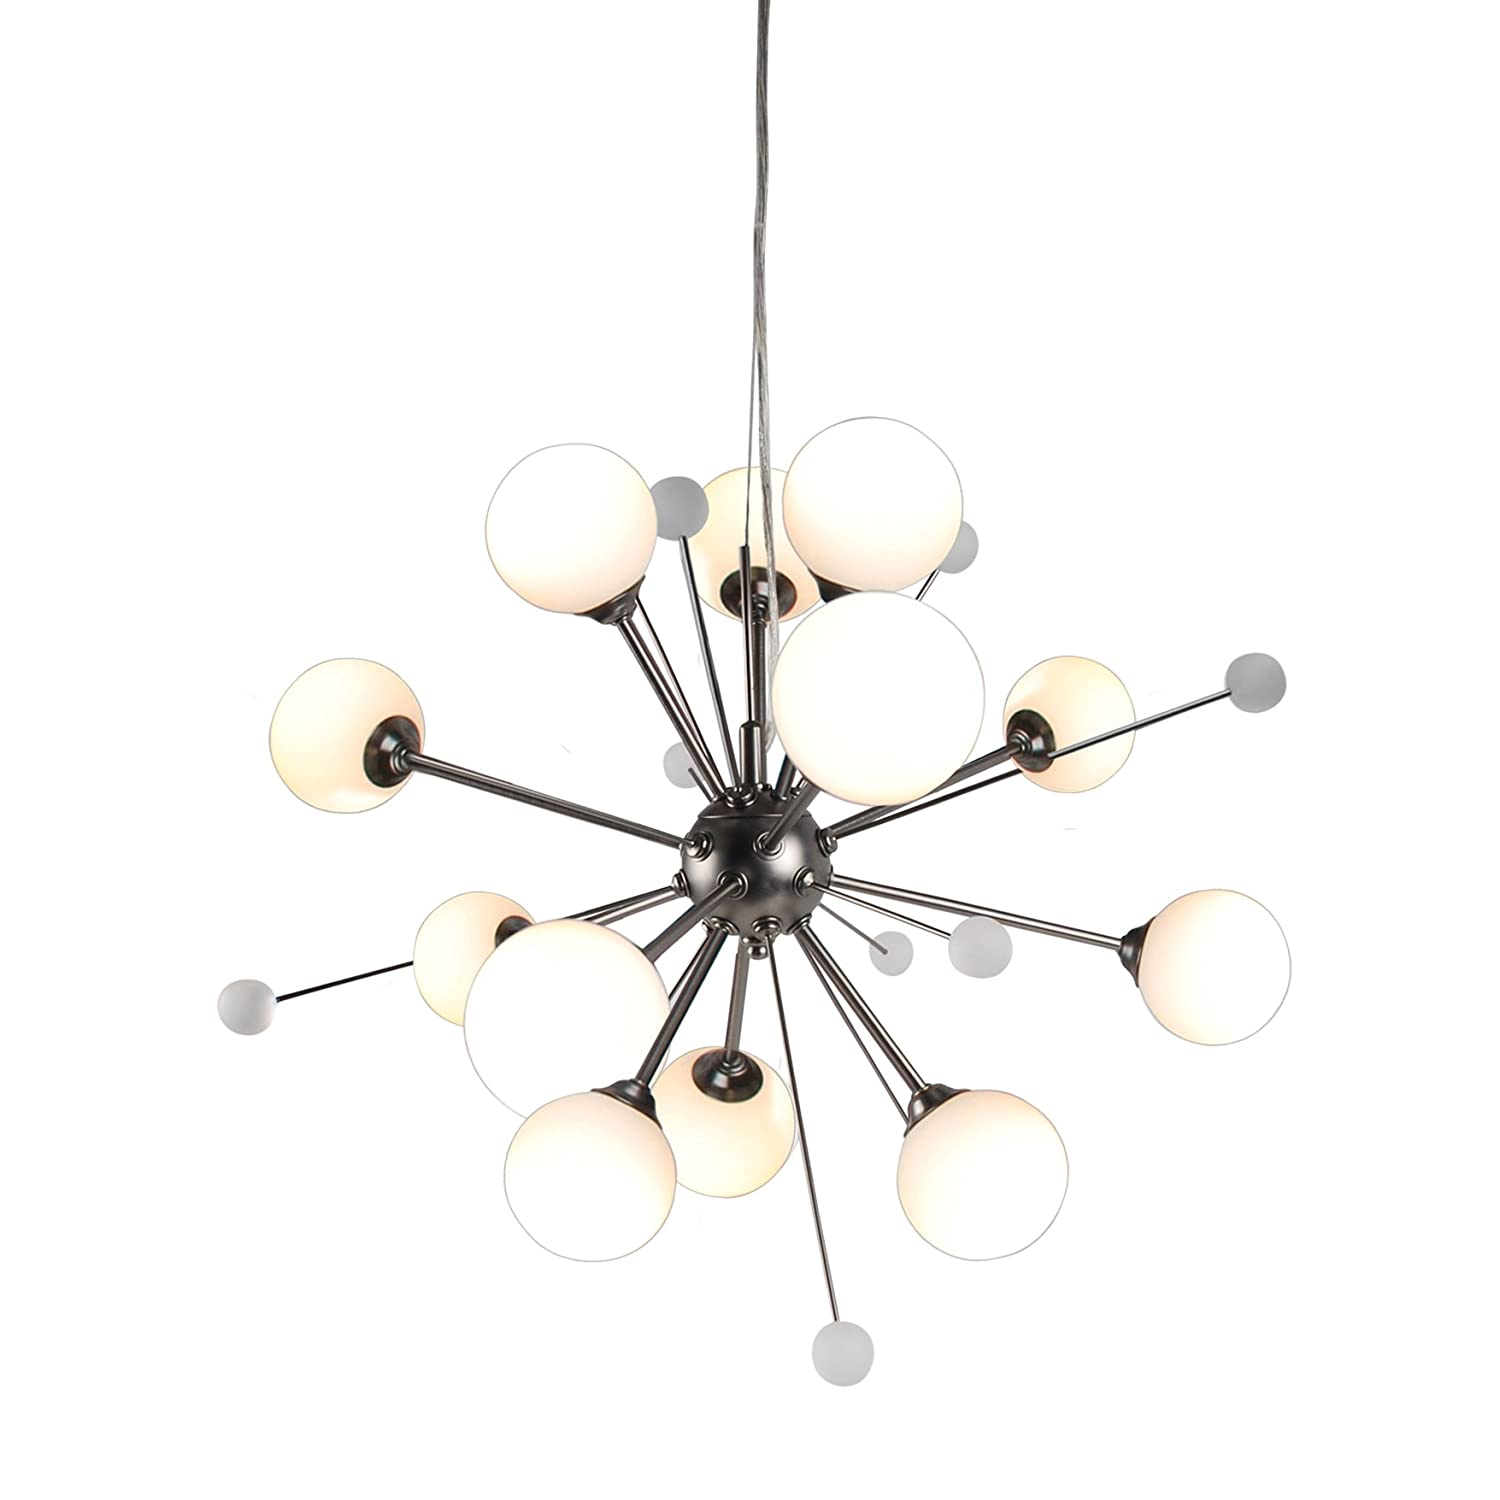 Contemporary Sputnik Style Design 12 Light Industrial Nickel Finish Ceiling Chandelier Adjustable Drop First Choice Lighting